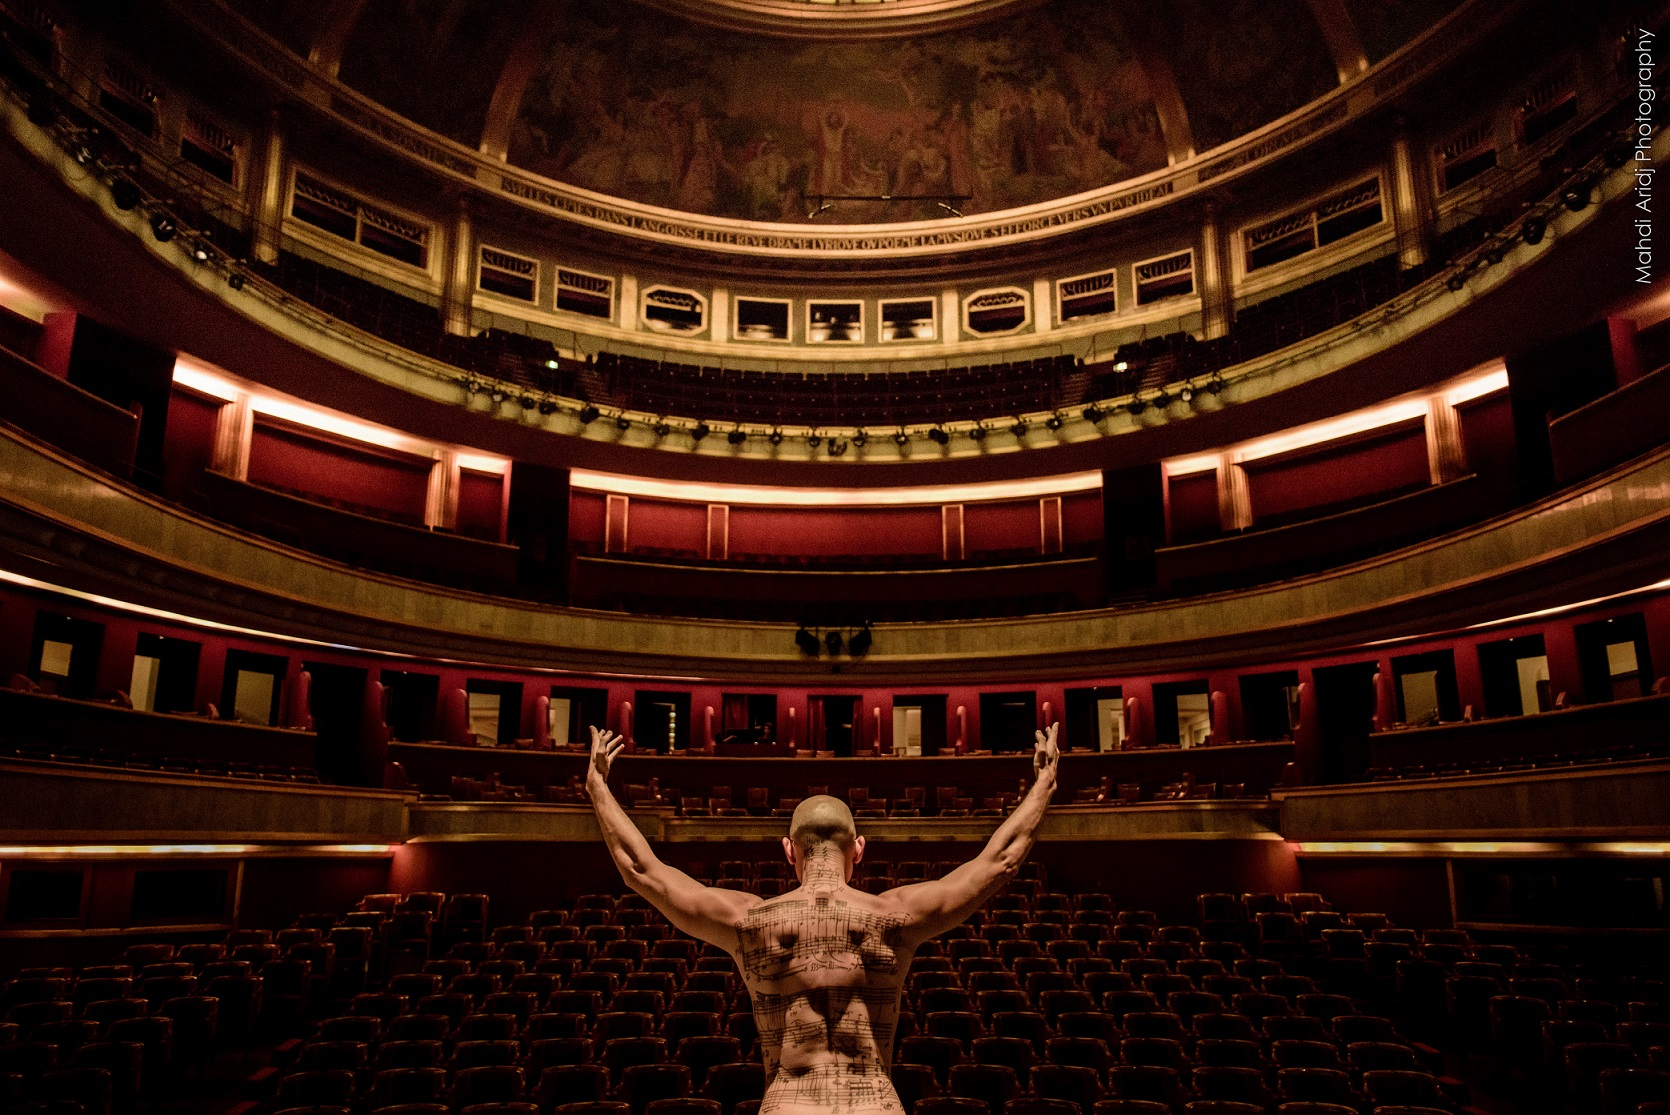 An evening at the Théâtre des Champs-Elysées - Une soirée au théâtre des champs-Elysées